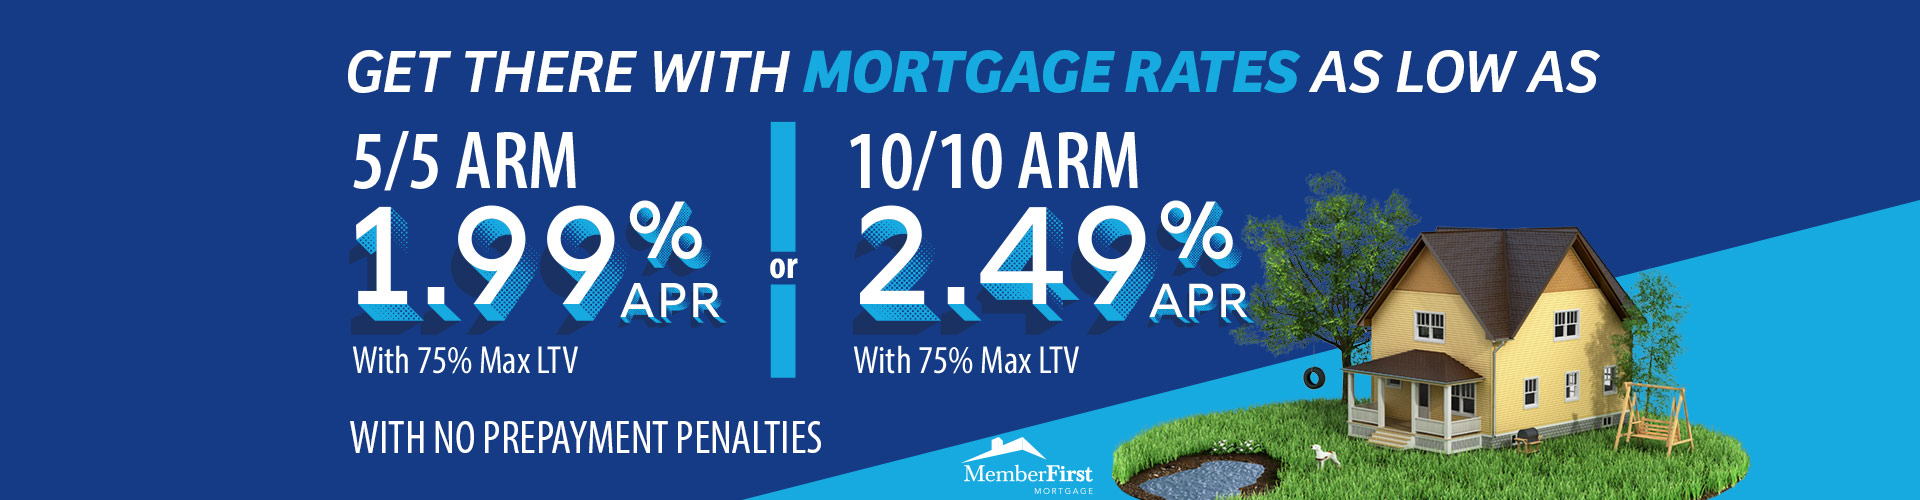 Get there with low mortgage rates from Dover Federal